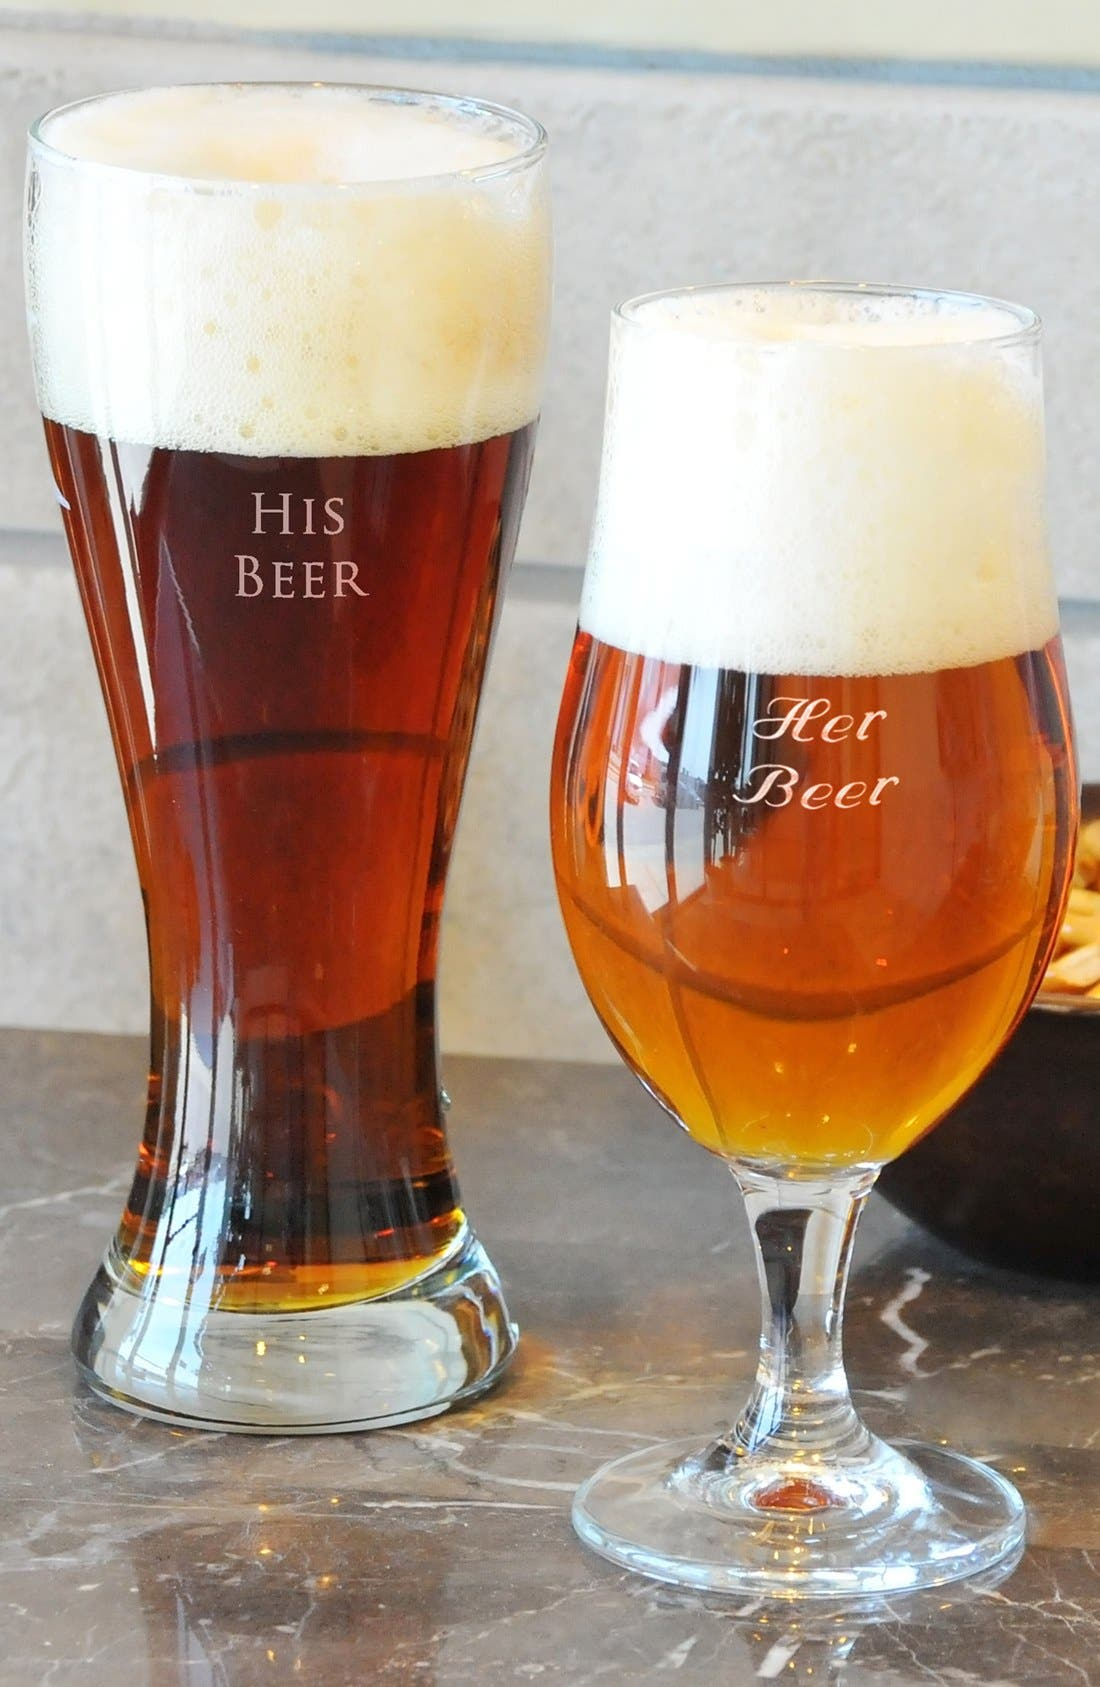 Alternate Image 1 Selected - Cathy's Concepts 'His Beer & Her Beer' Monogram Pilsner Glasses (Set of 2)